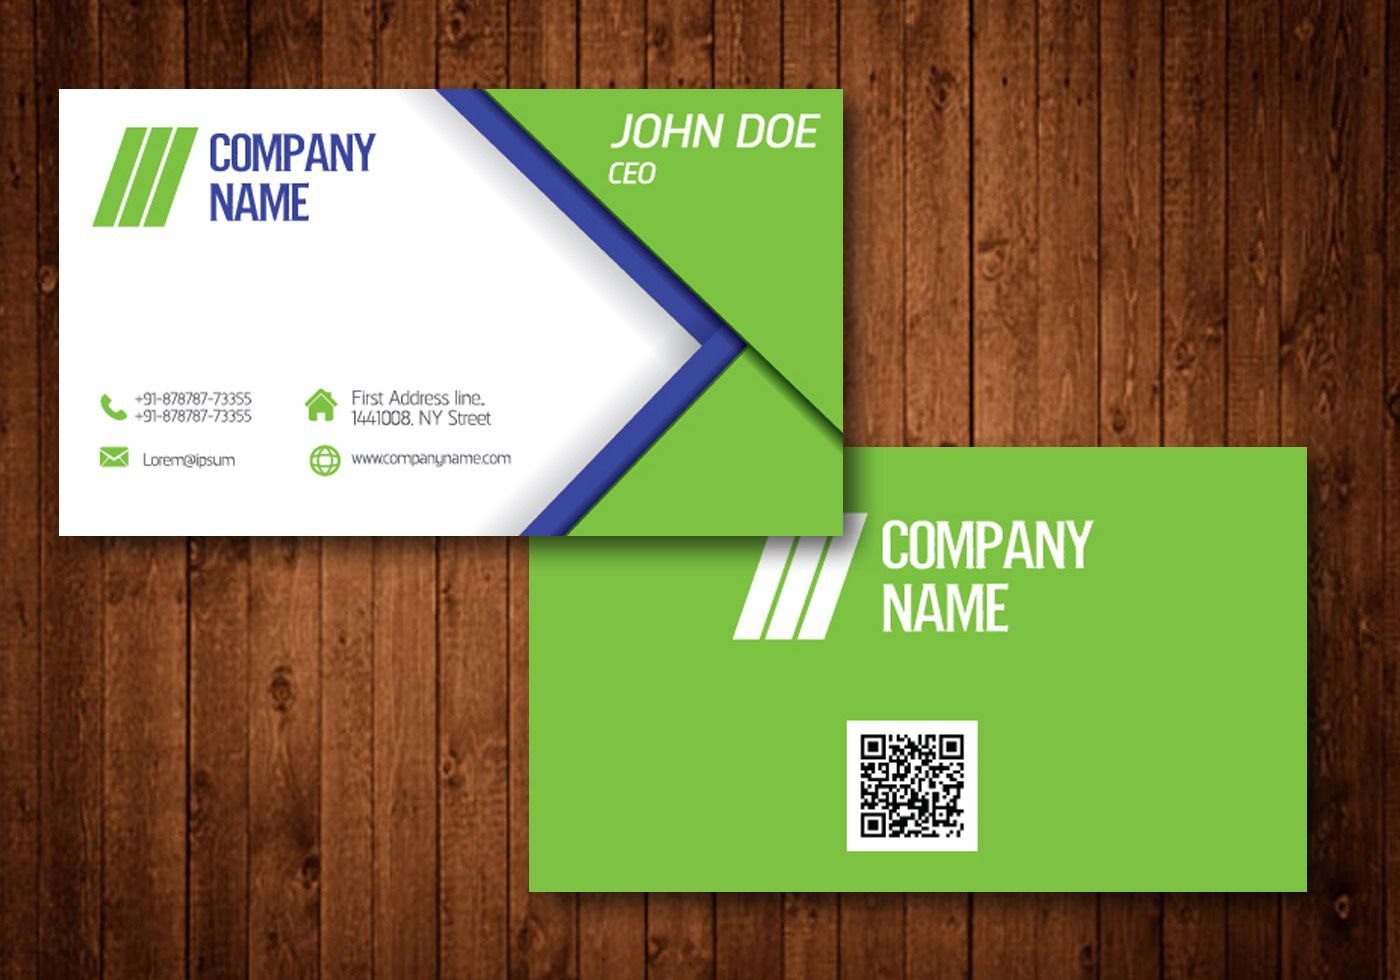 009 Frightening Name Card Template Free Download High Def  Table Ai WeddingFull